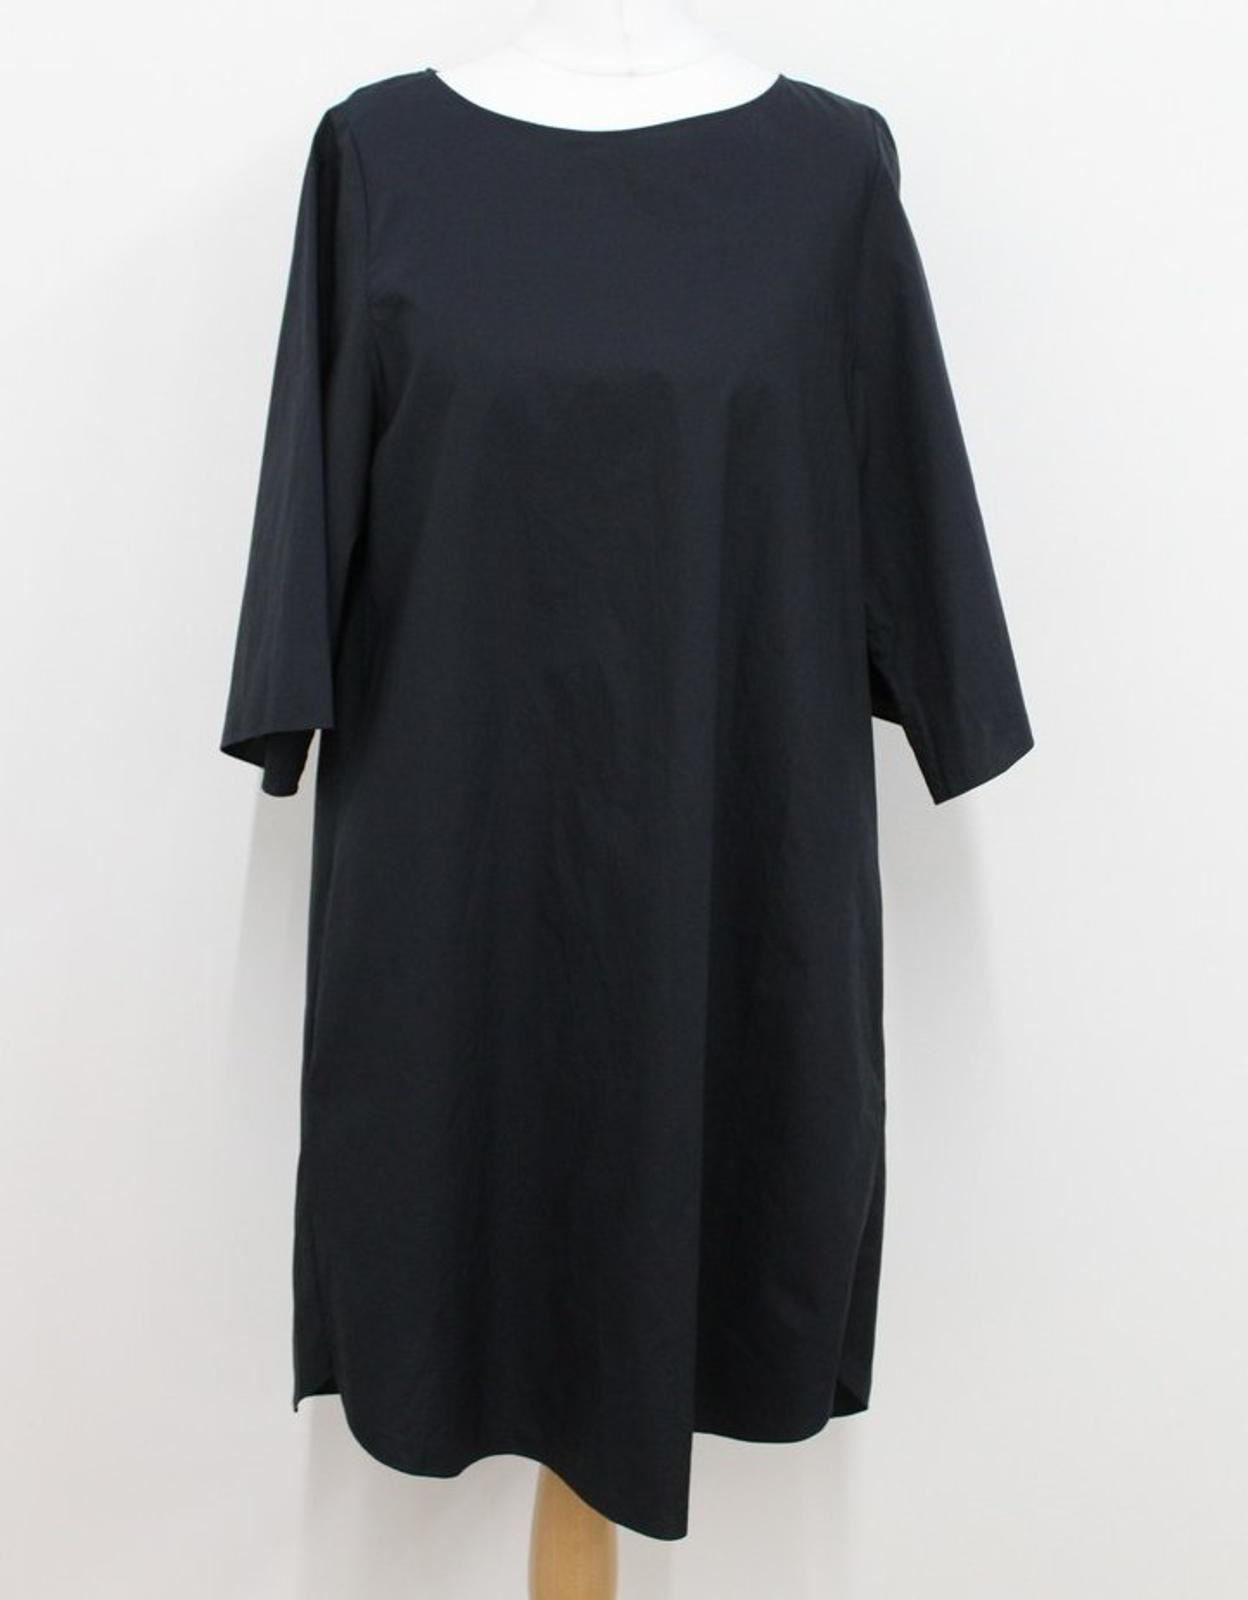 COS-Ladies-Navy-Blue-Cotton-Short-Sleeve-Crew-Neck-Shift-Midi-Dress-EU34-UK8